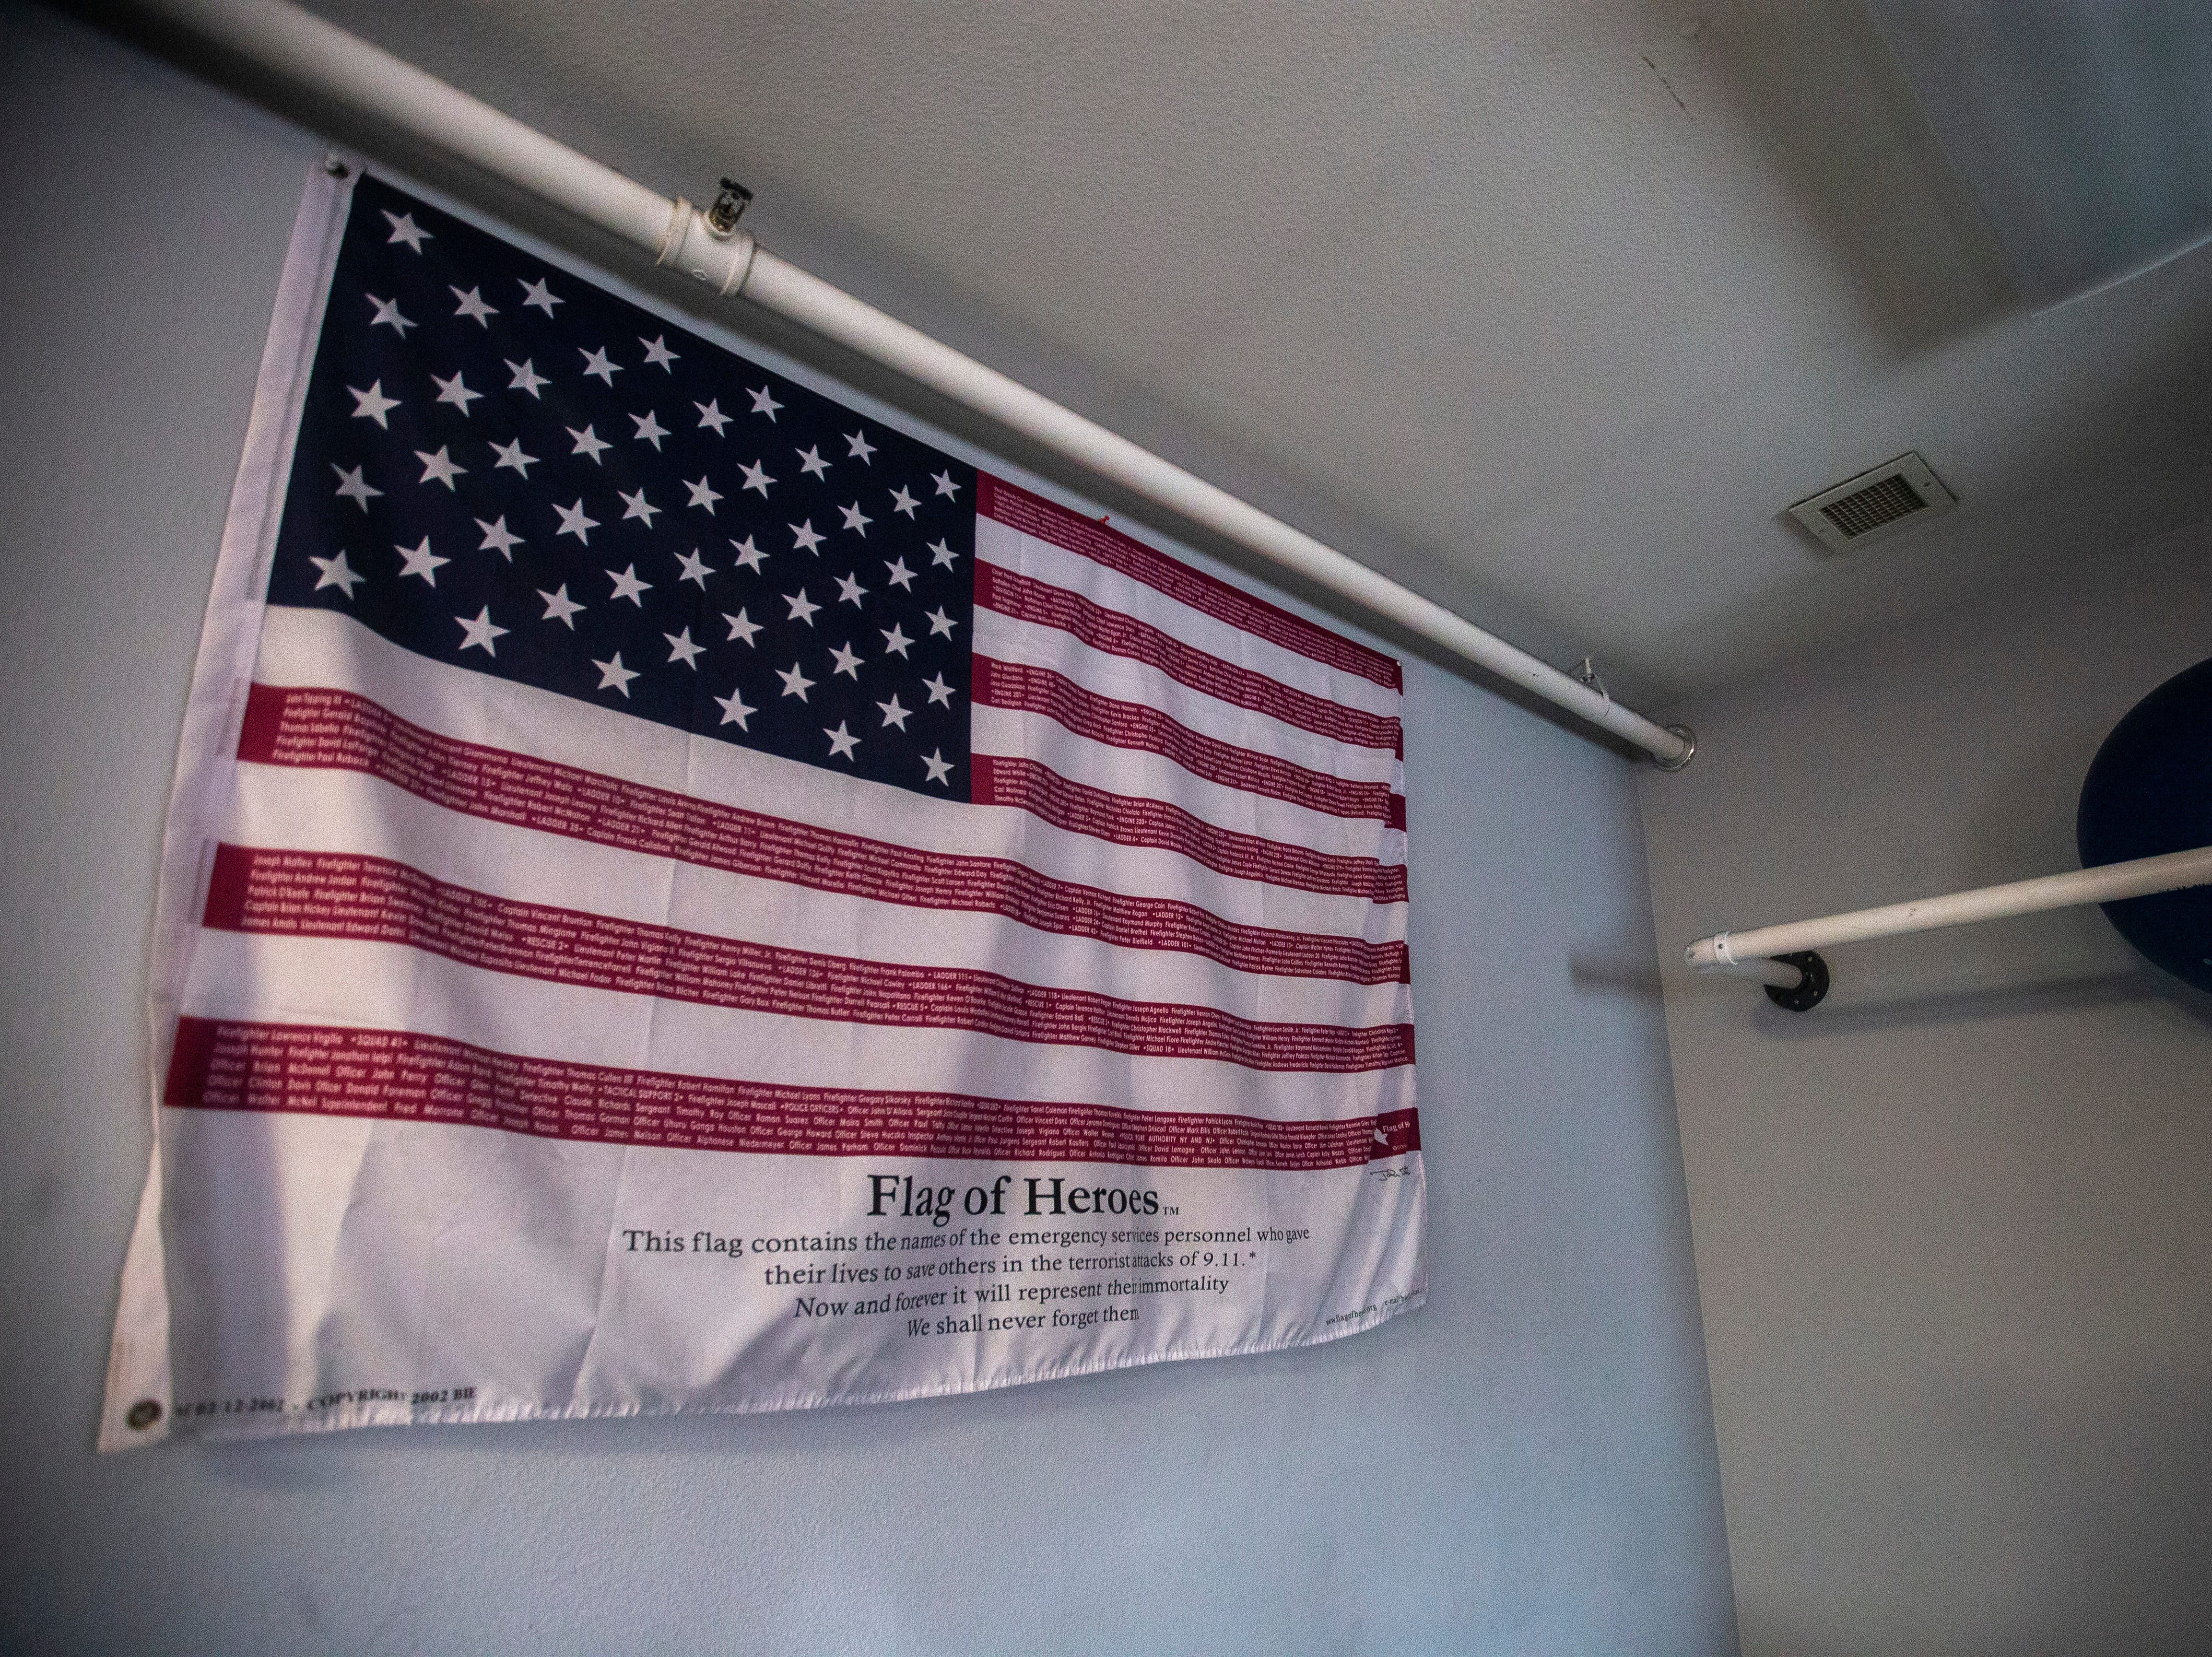 "A ""Flag of heroes"" featuring the names of emergency responders who died during the terrorist attacks on 9/11 in the red stripes of the American flag hangs in an exercise room on Thursday, March 7, 2019, inside Fire Station No. 1, at 10 South Gilbert Street in downtown Iowa City, Iowa."